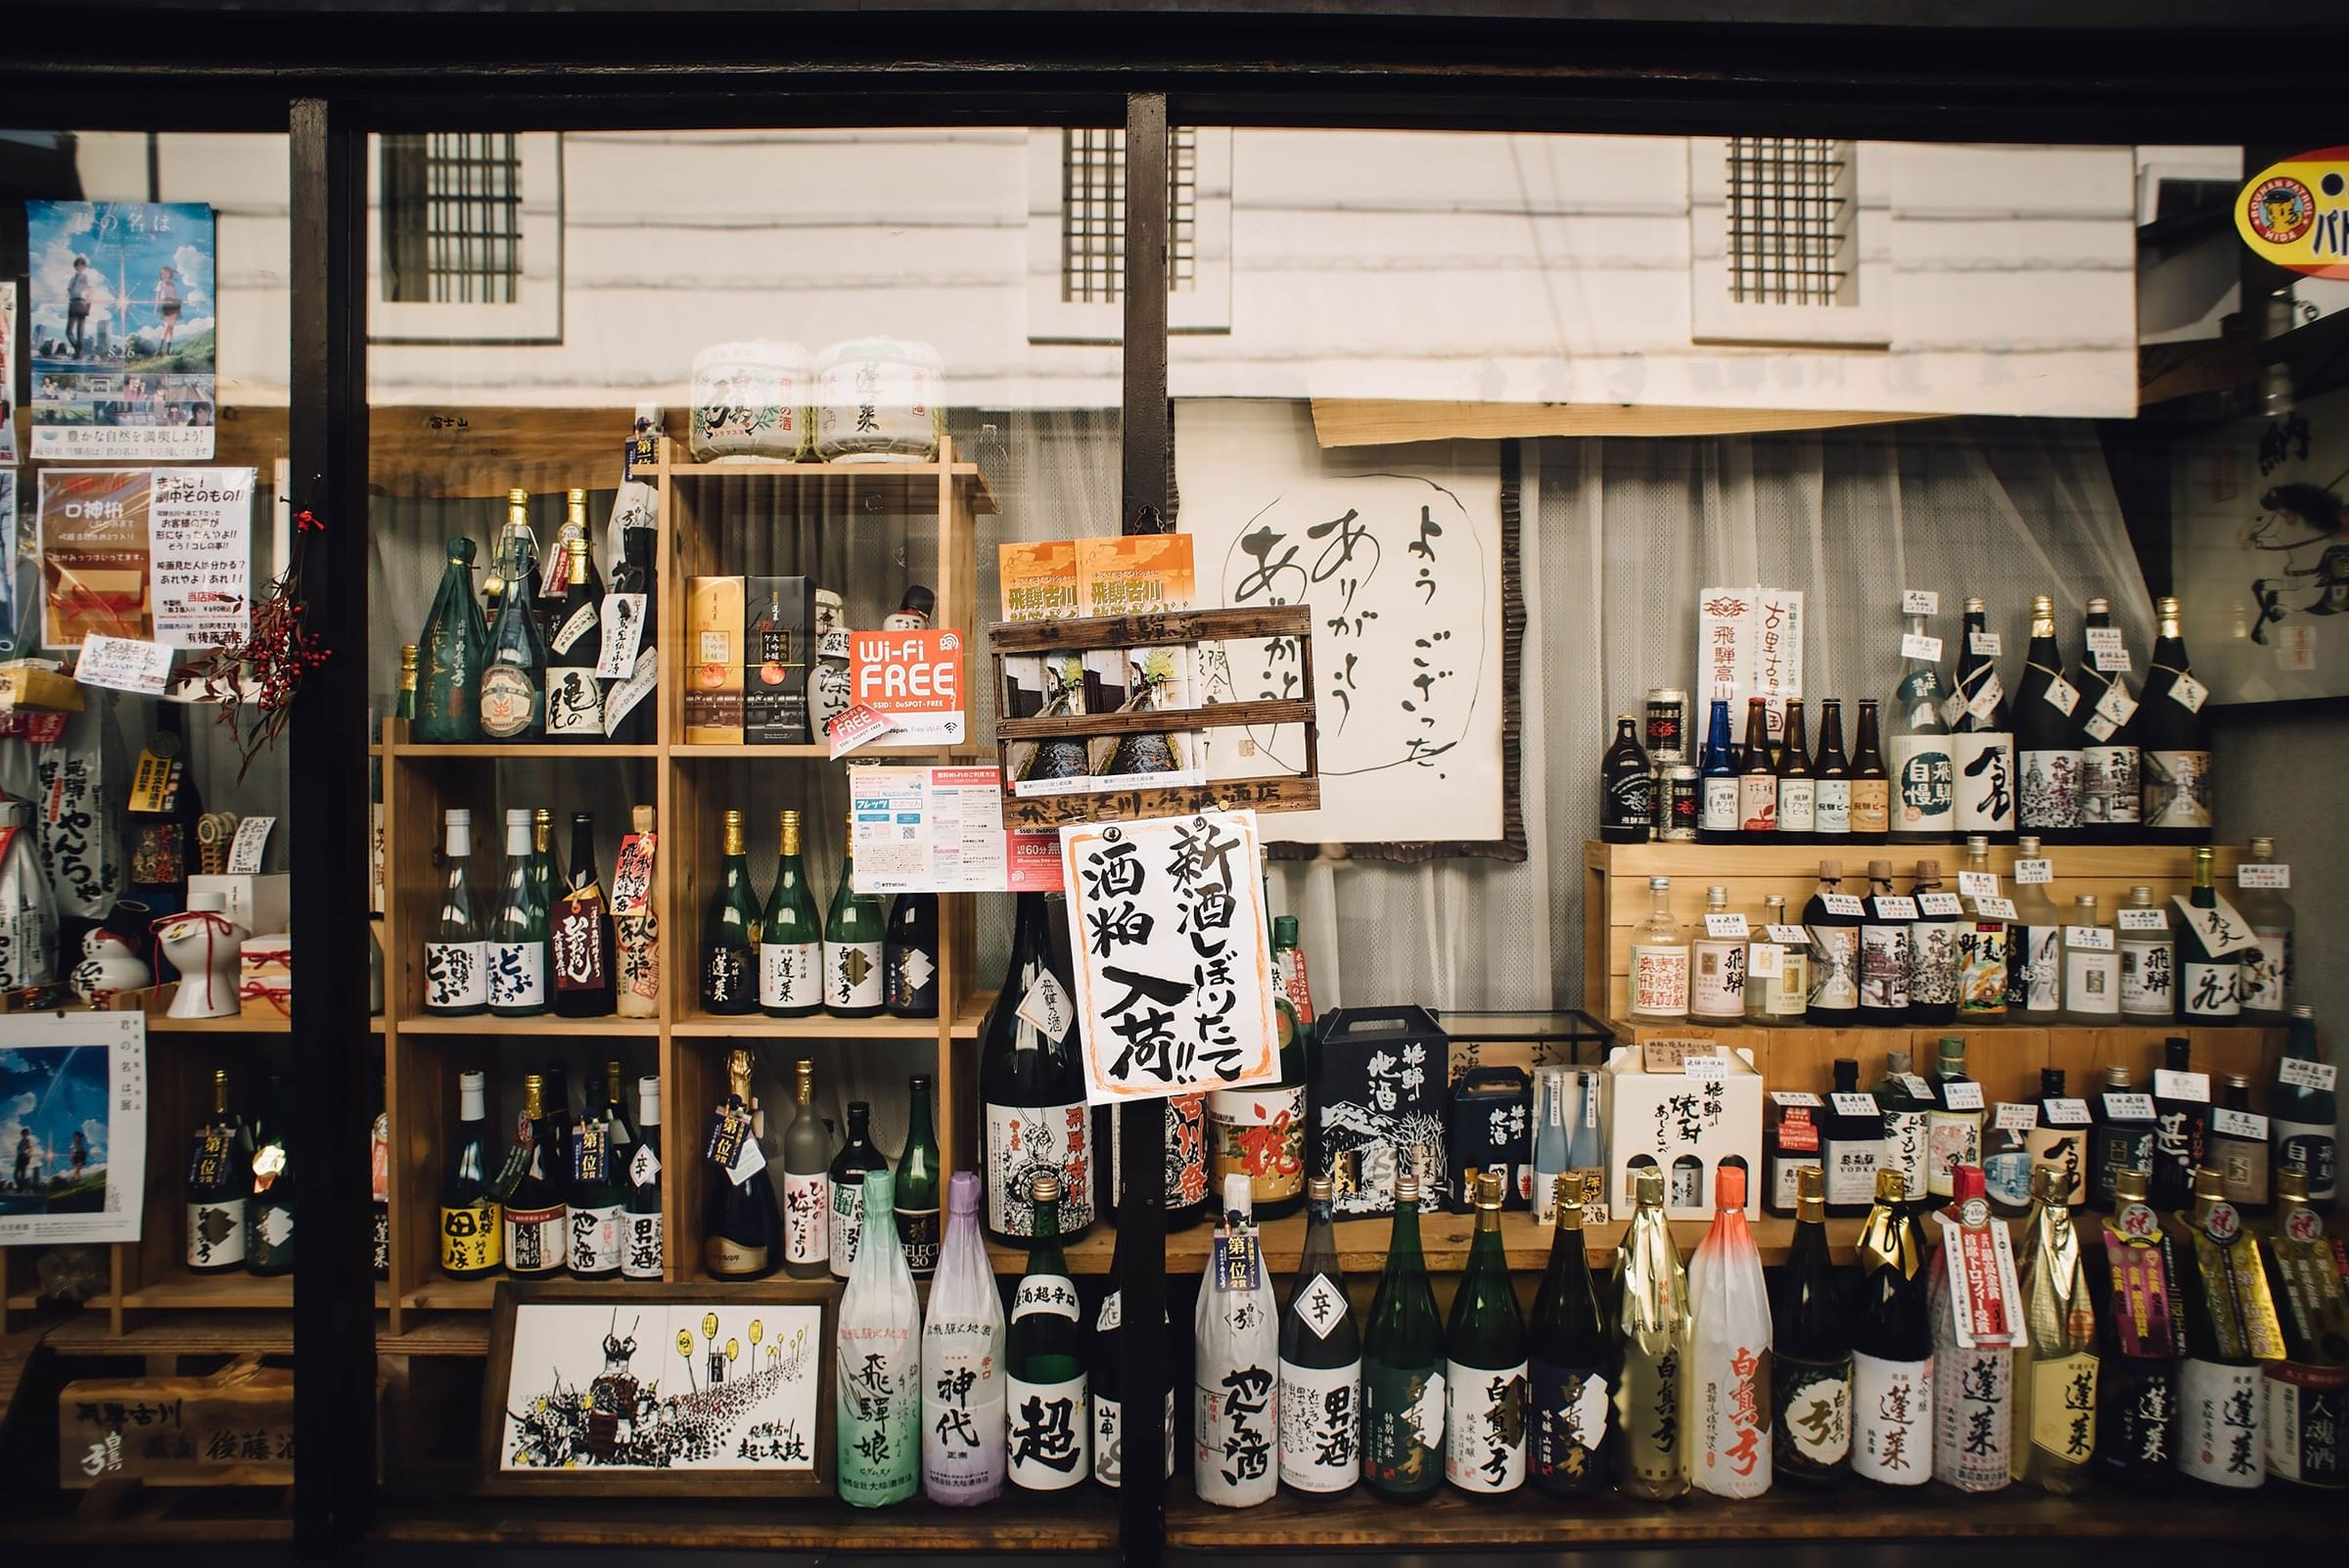 Where to drink saké in Stockholm